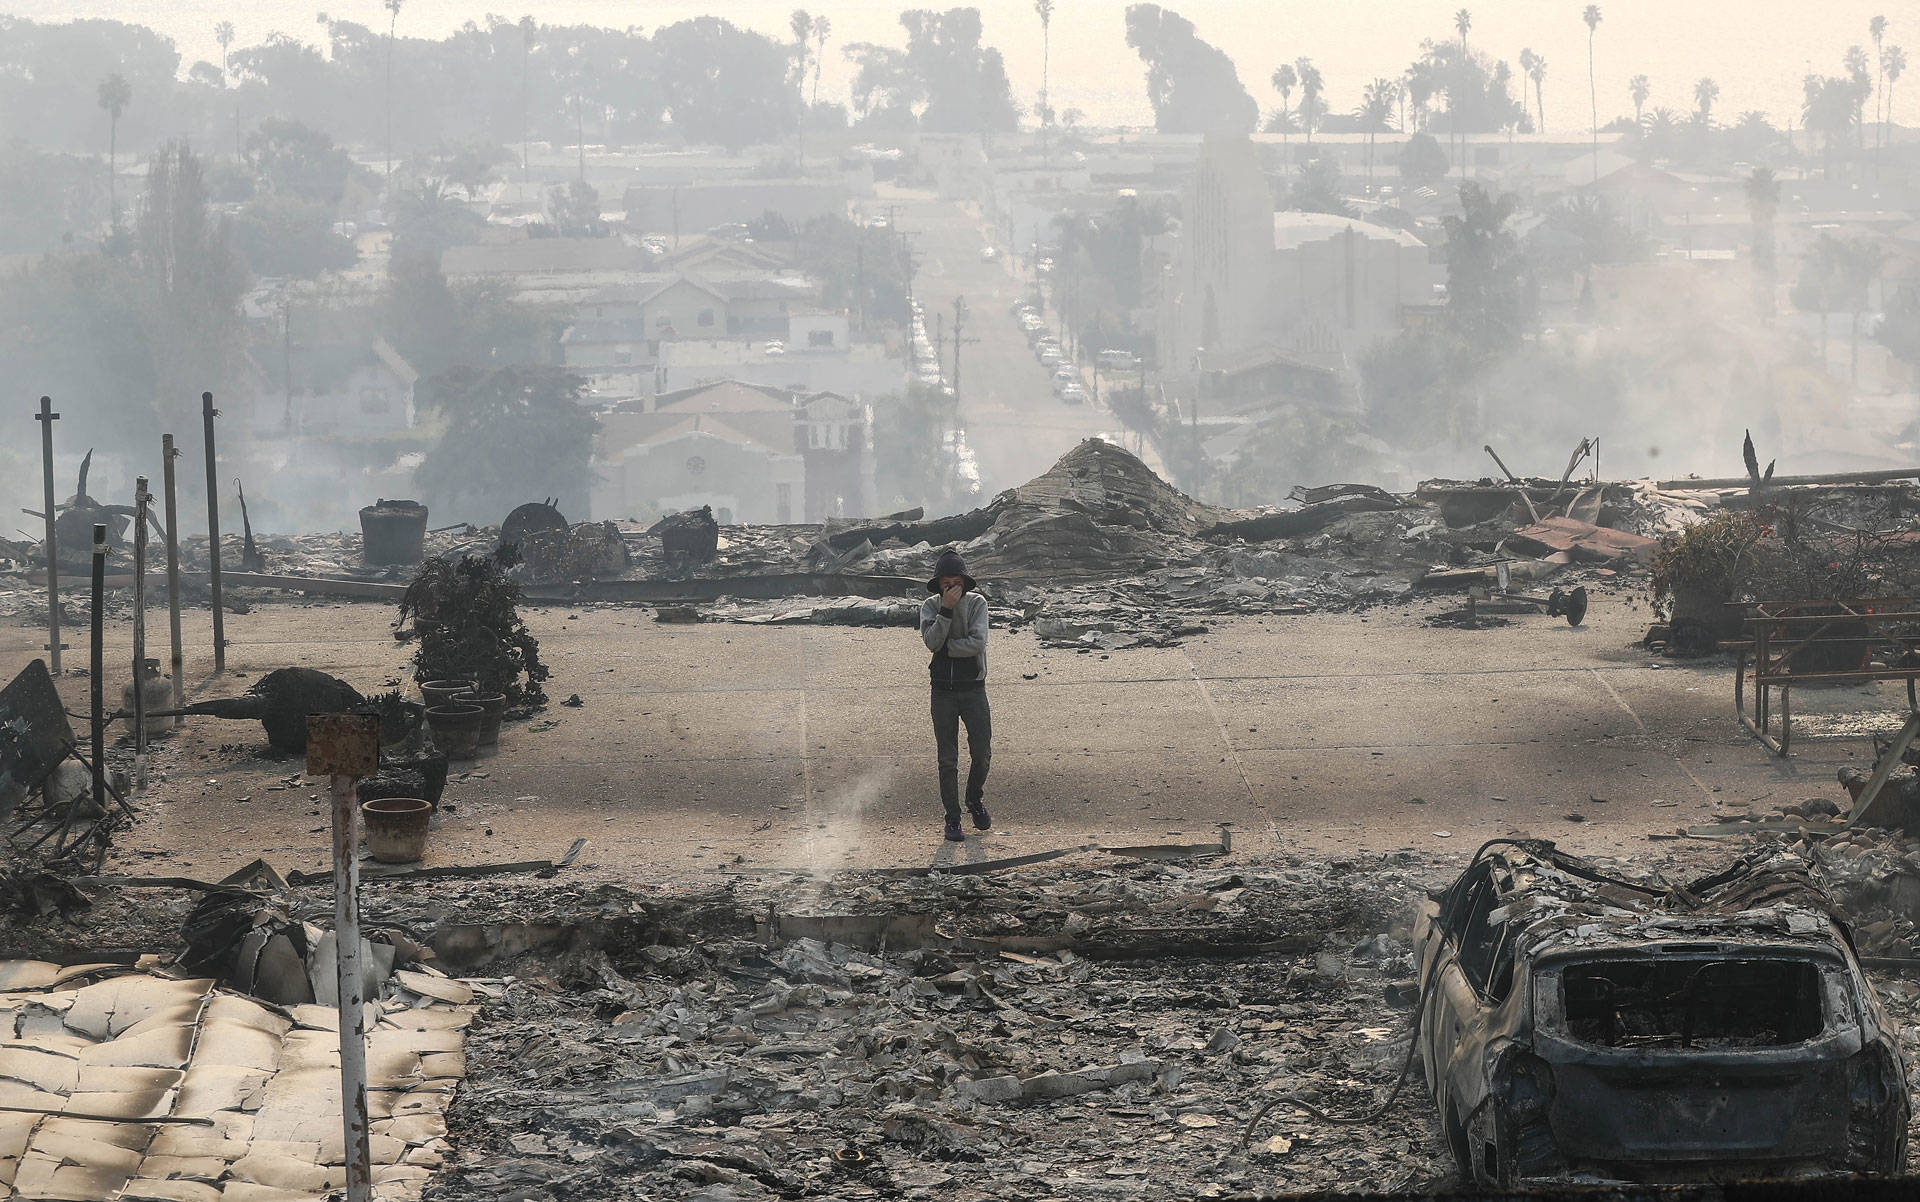 A resident walks in the remains of an apartment complex destroyed by the Thomas Fire in a residential neighborhood on Dec. 5, 2017 in Ventura.